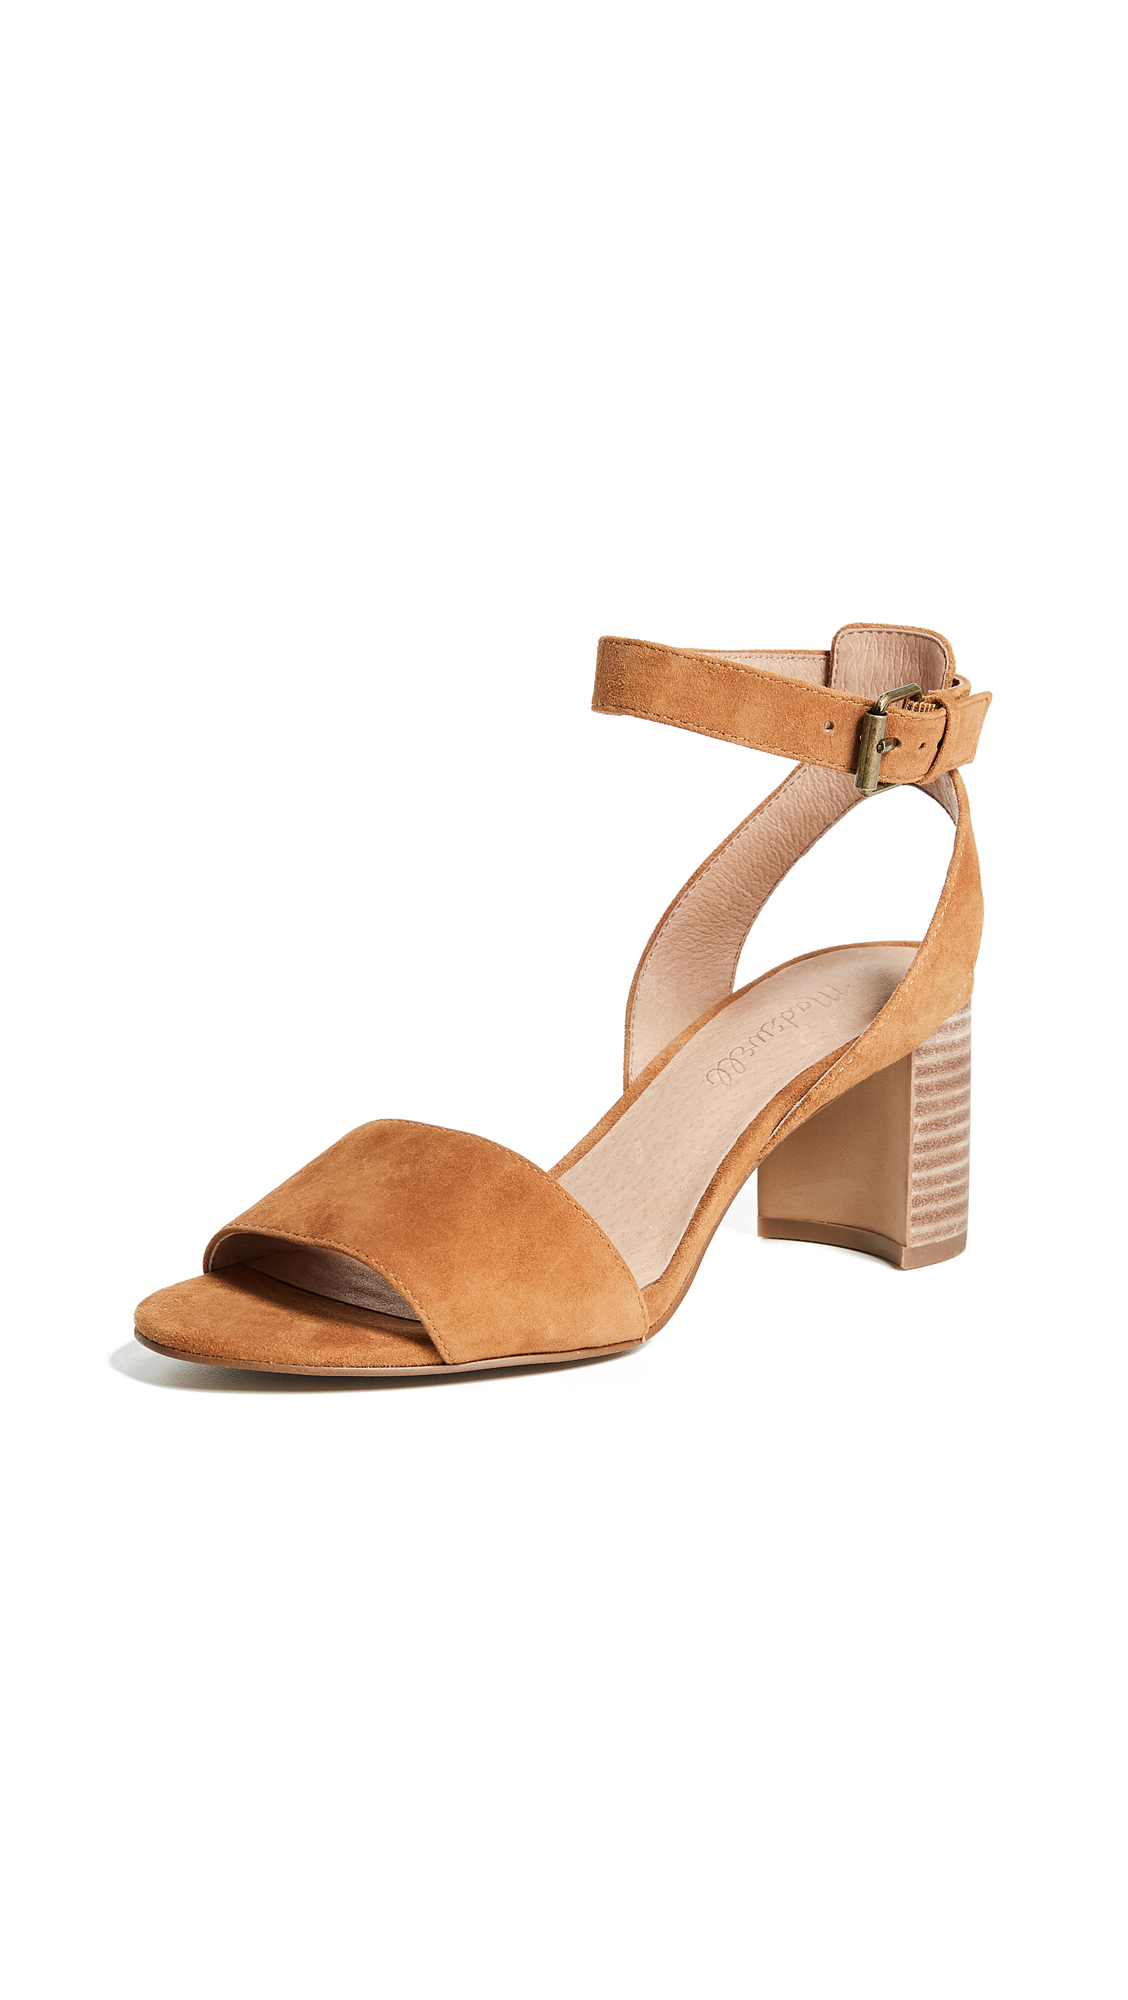 Madewell Bridget Sandals - Amber Brown